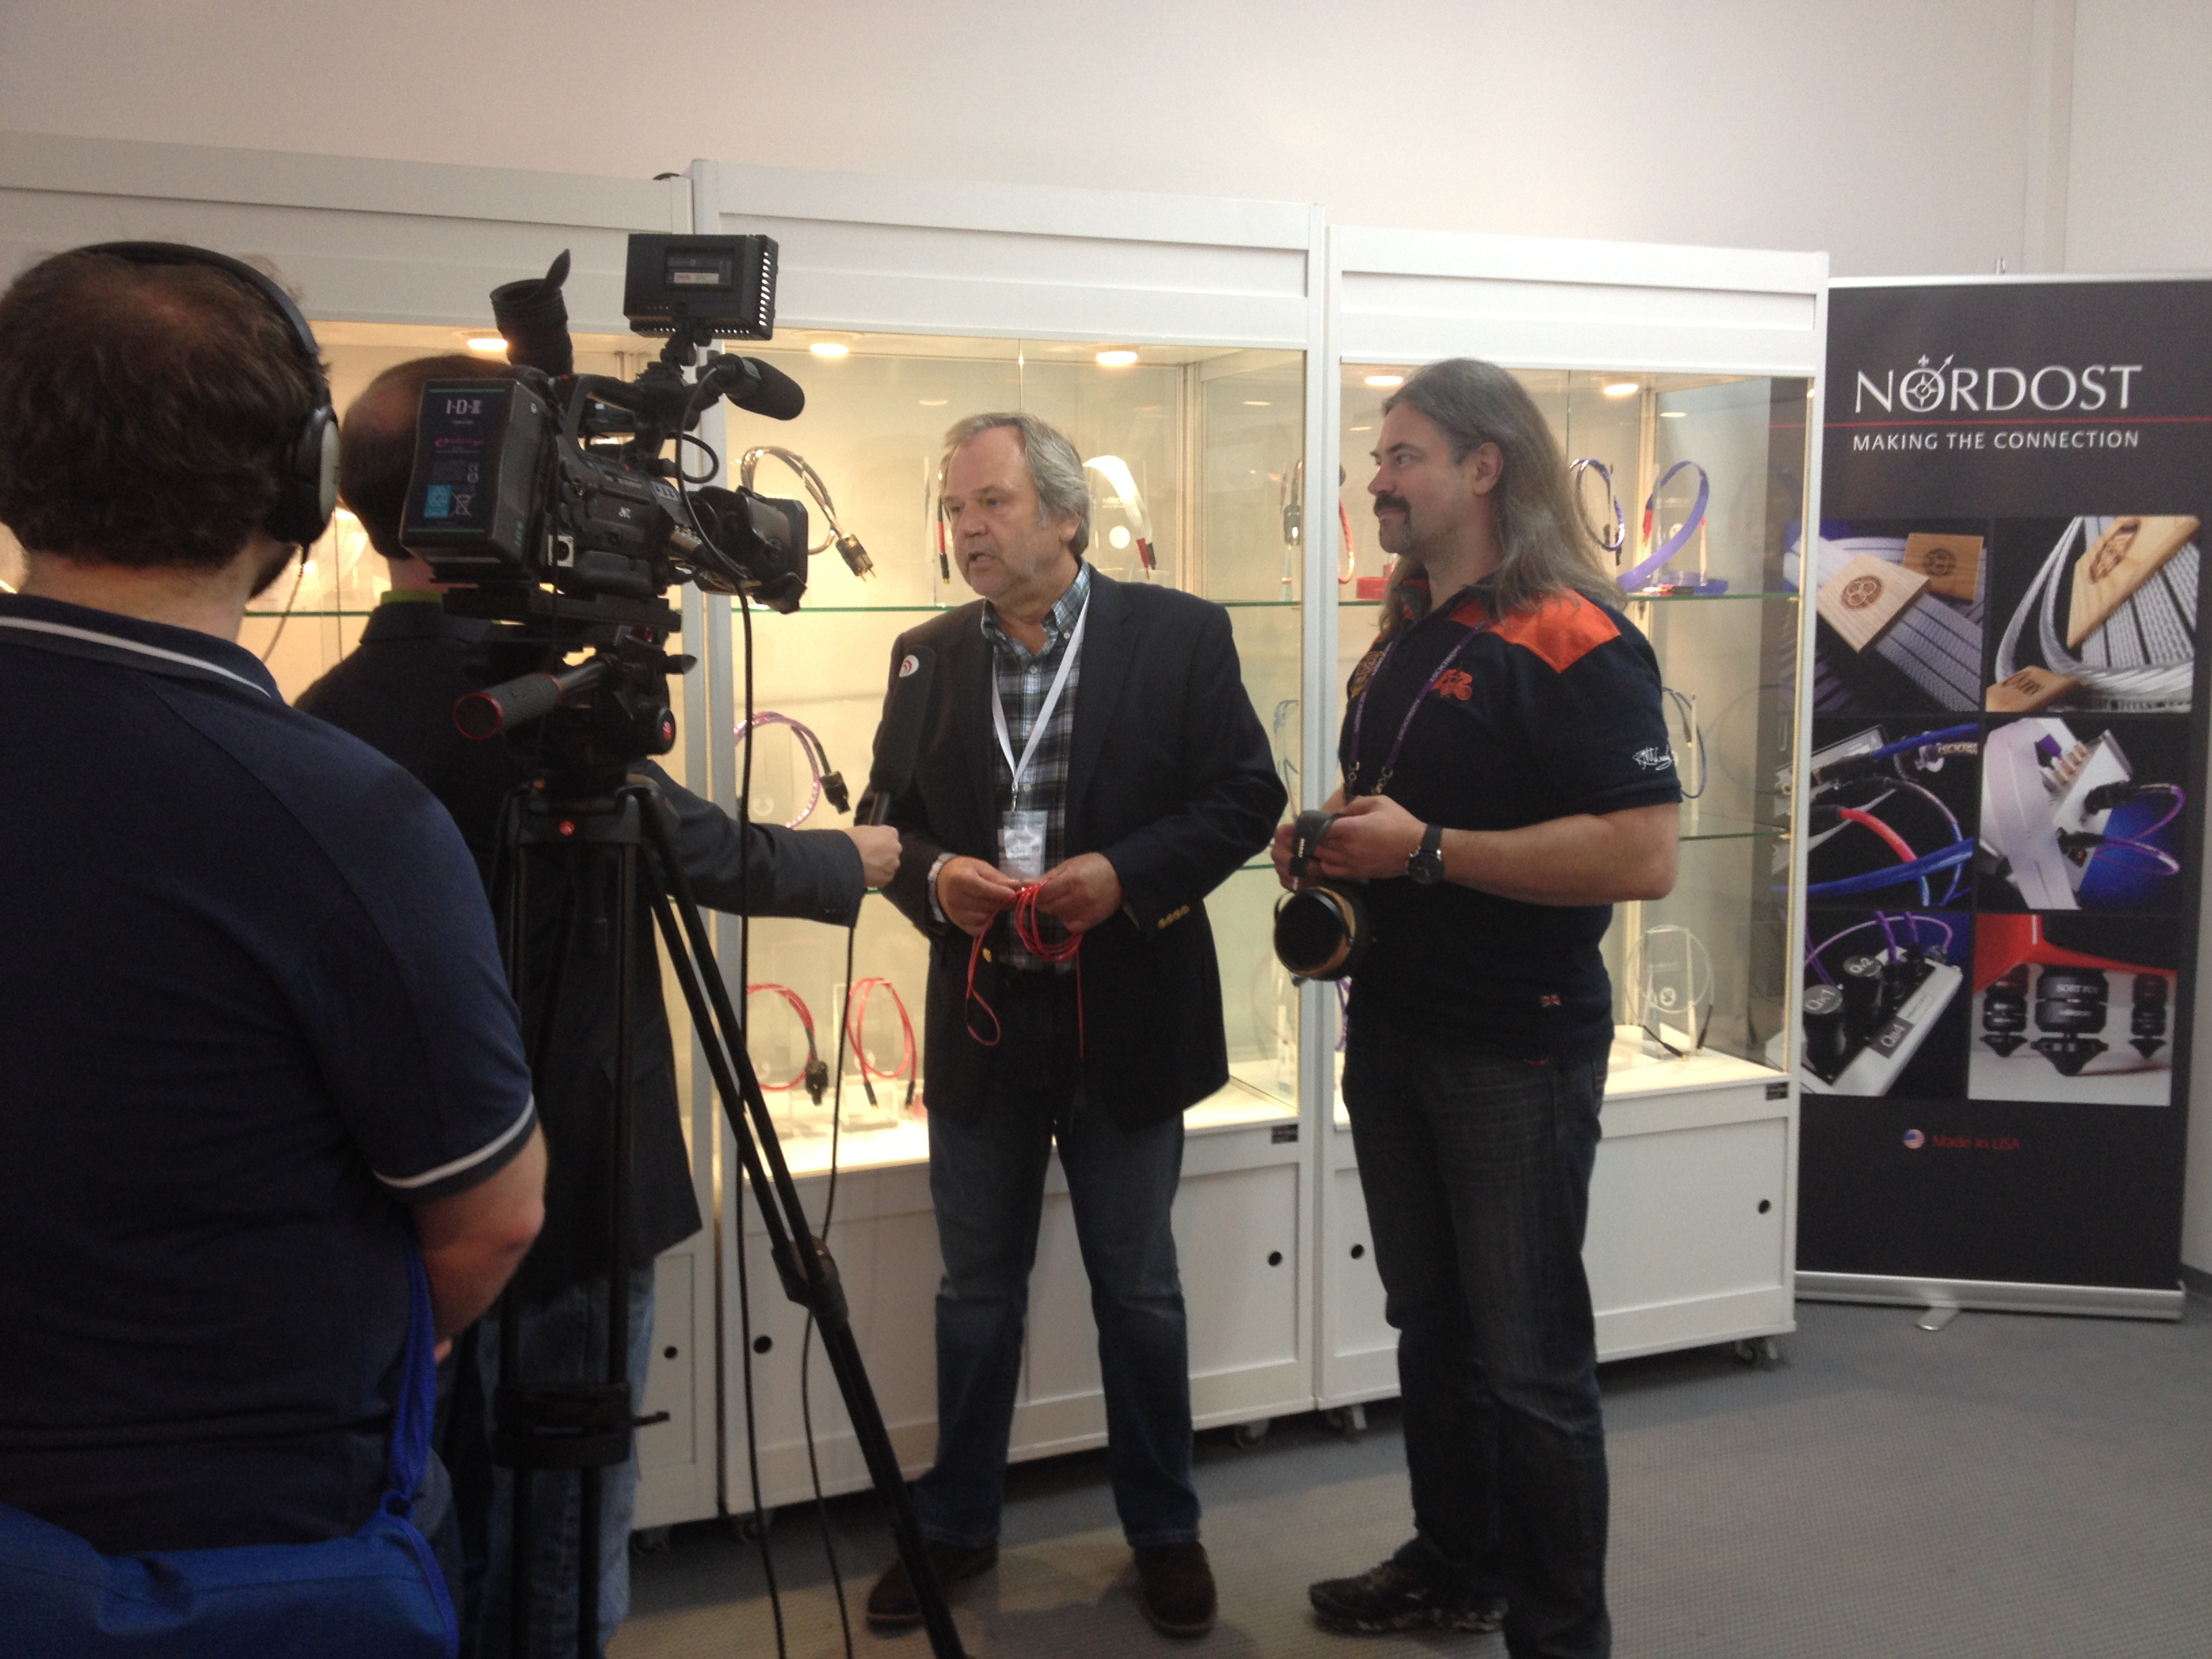 Bjorn Bengtsson and Andreas Proske showing off the new Heimdall 2 Headphone Cable